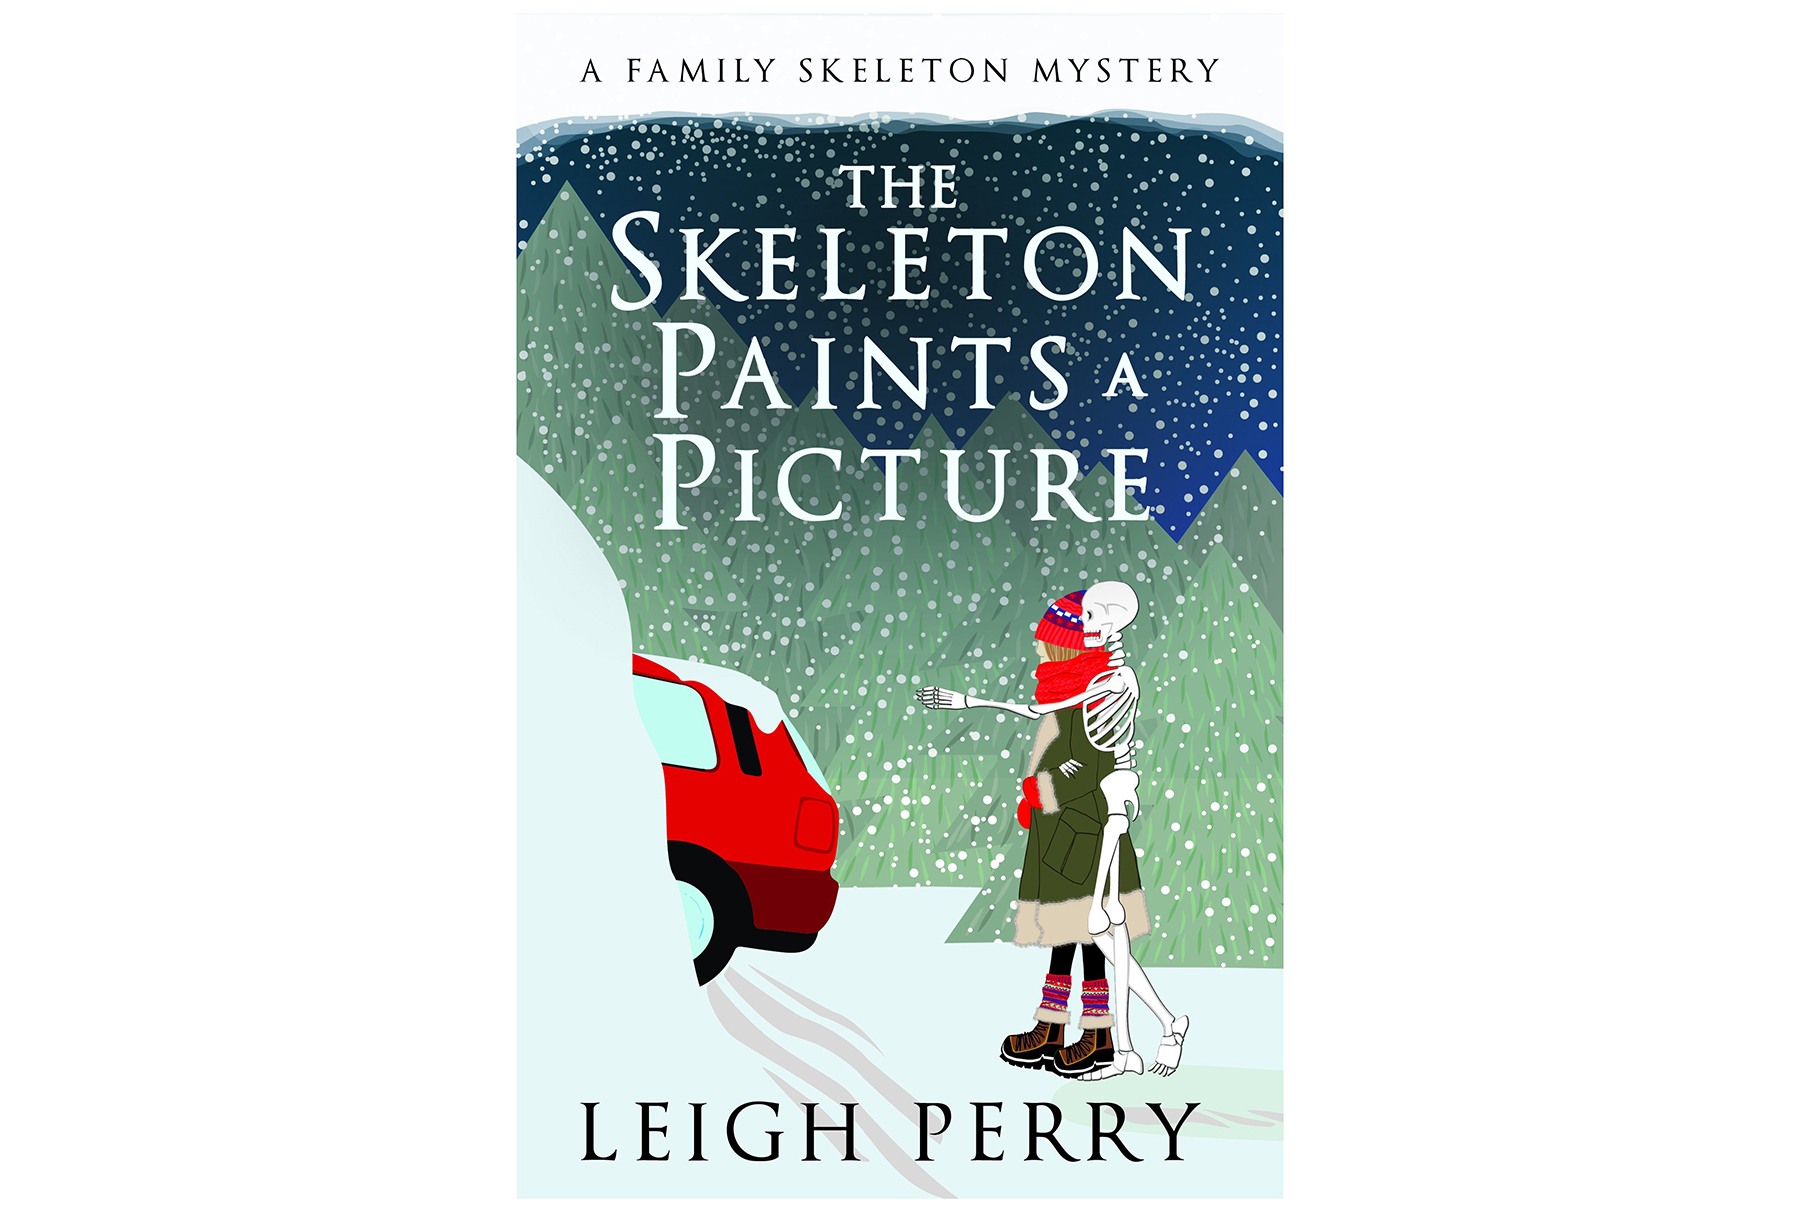 The Skeleton Paints a Picture, by Leigh Perry